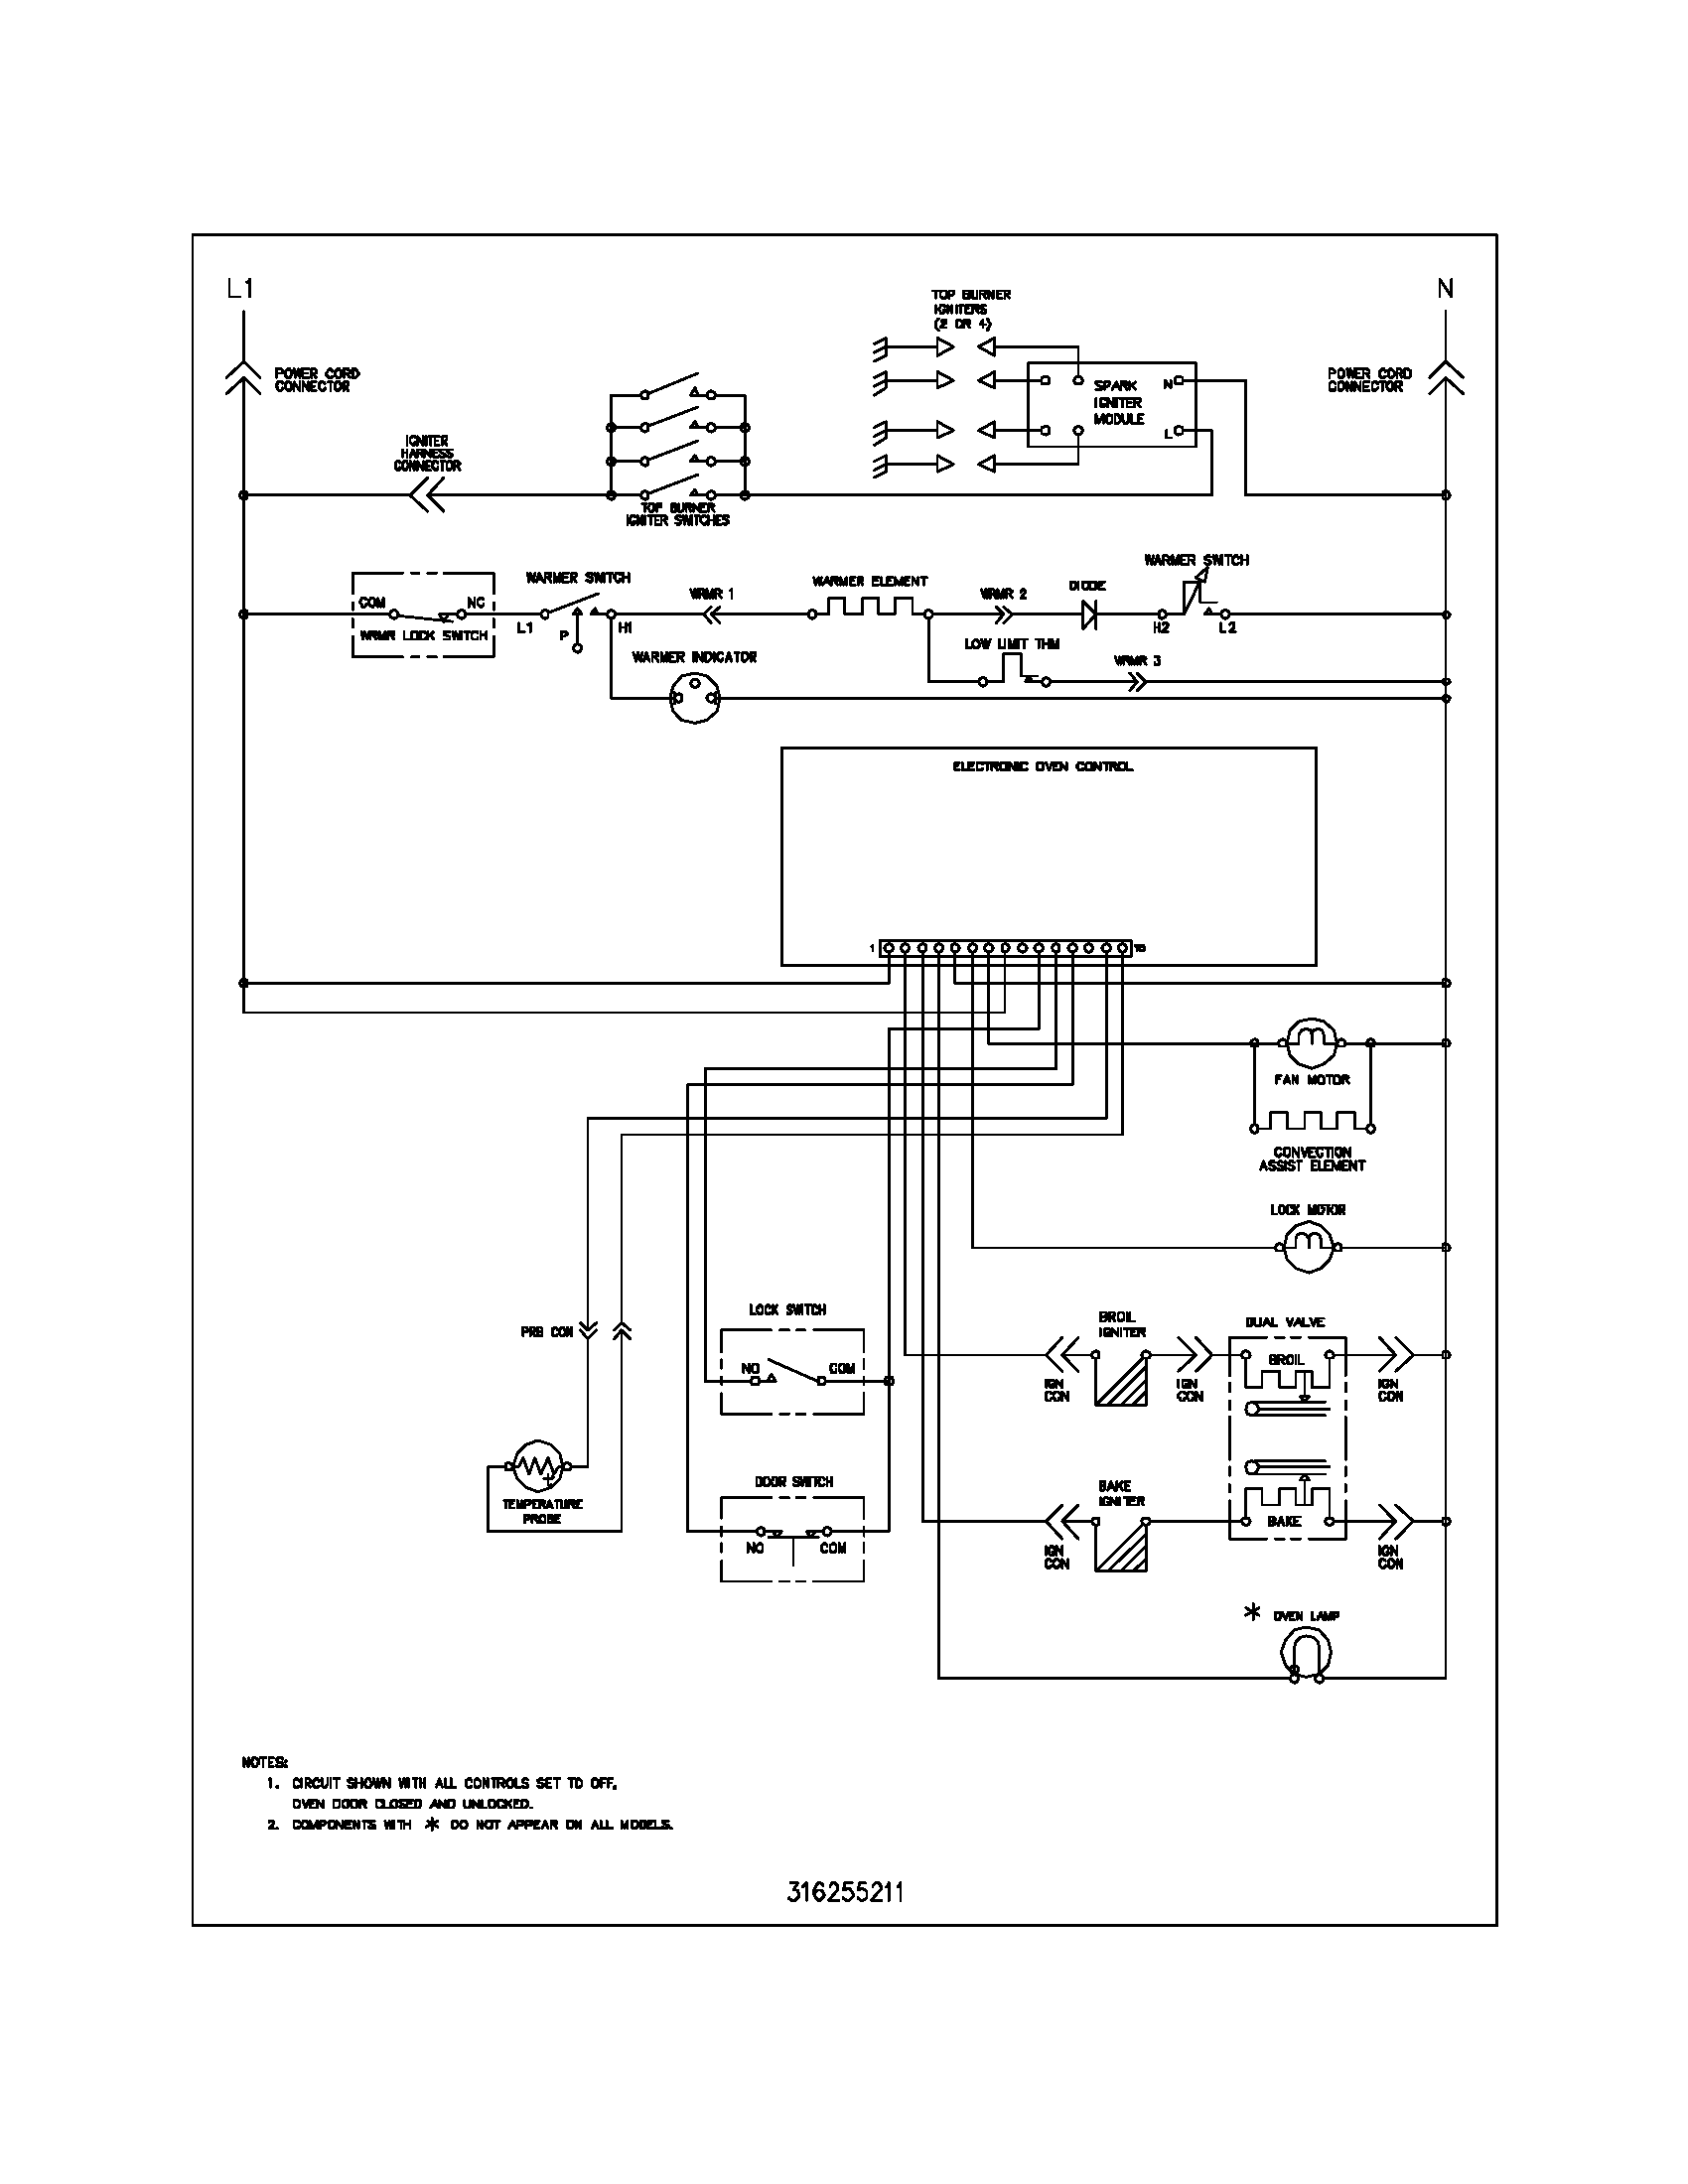 Frigidaire Thermostat Wiring Diagram Data Hvac Diagrams Plgf389ccc Gas Range Timer Stove Clocks And Appliance Freezer Parts